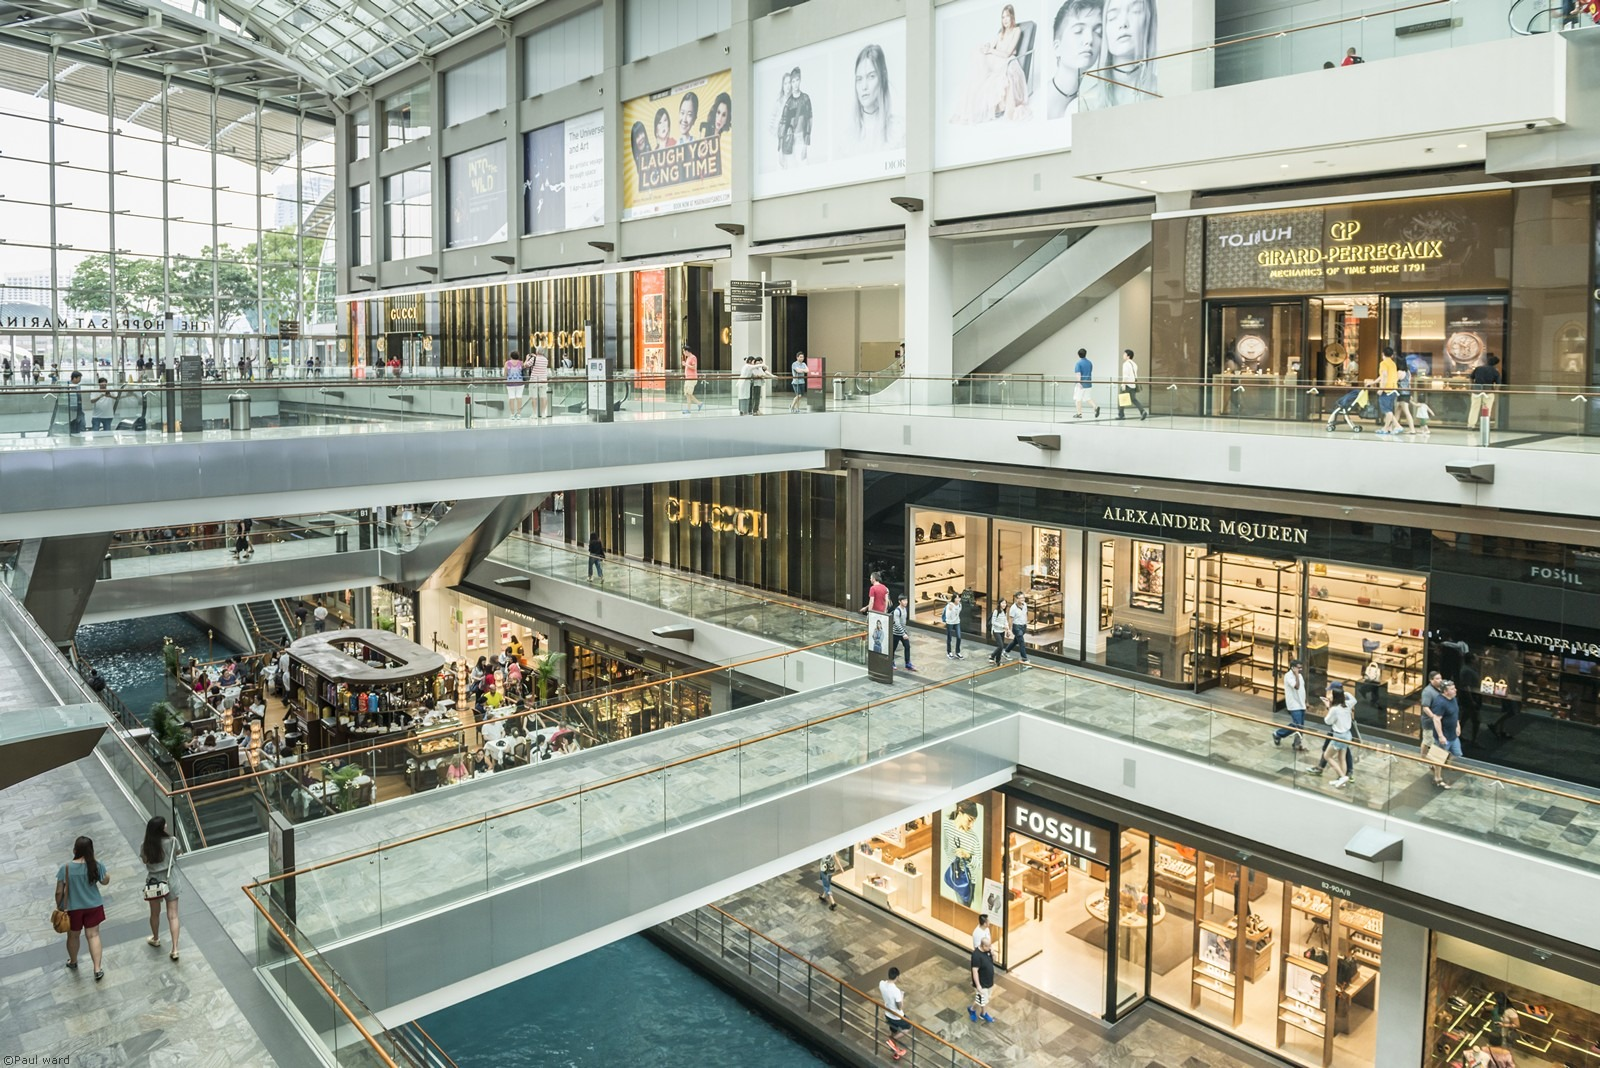 Singapore shopping mall by architectural photographer Paul Ward